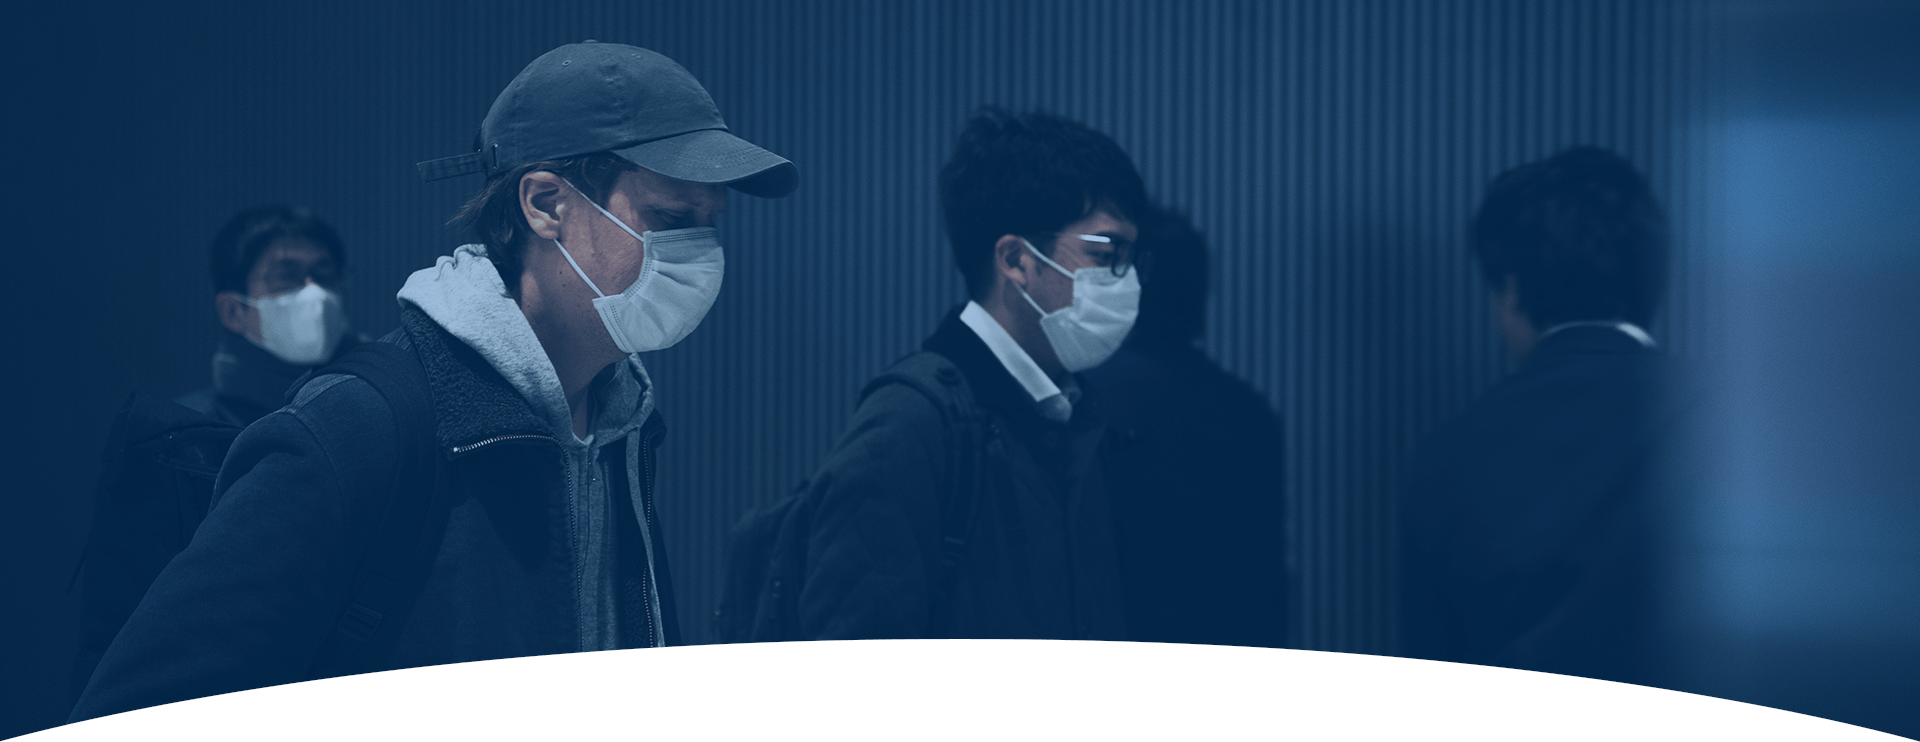 Commuters wearing masks COVID-19 risks